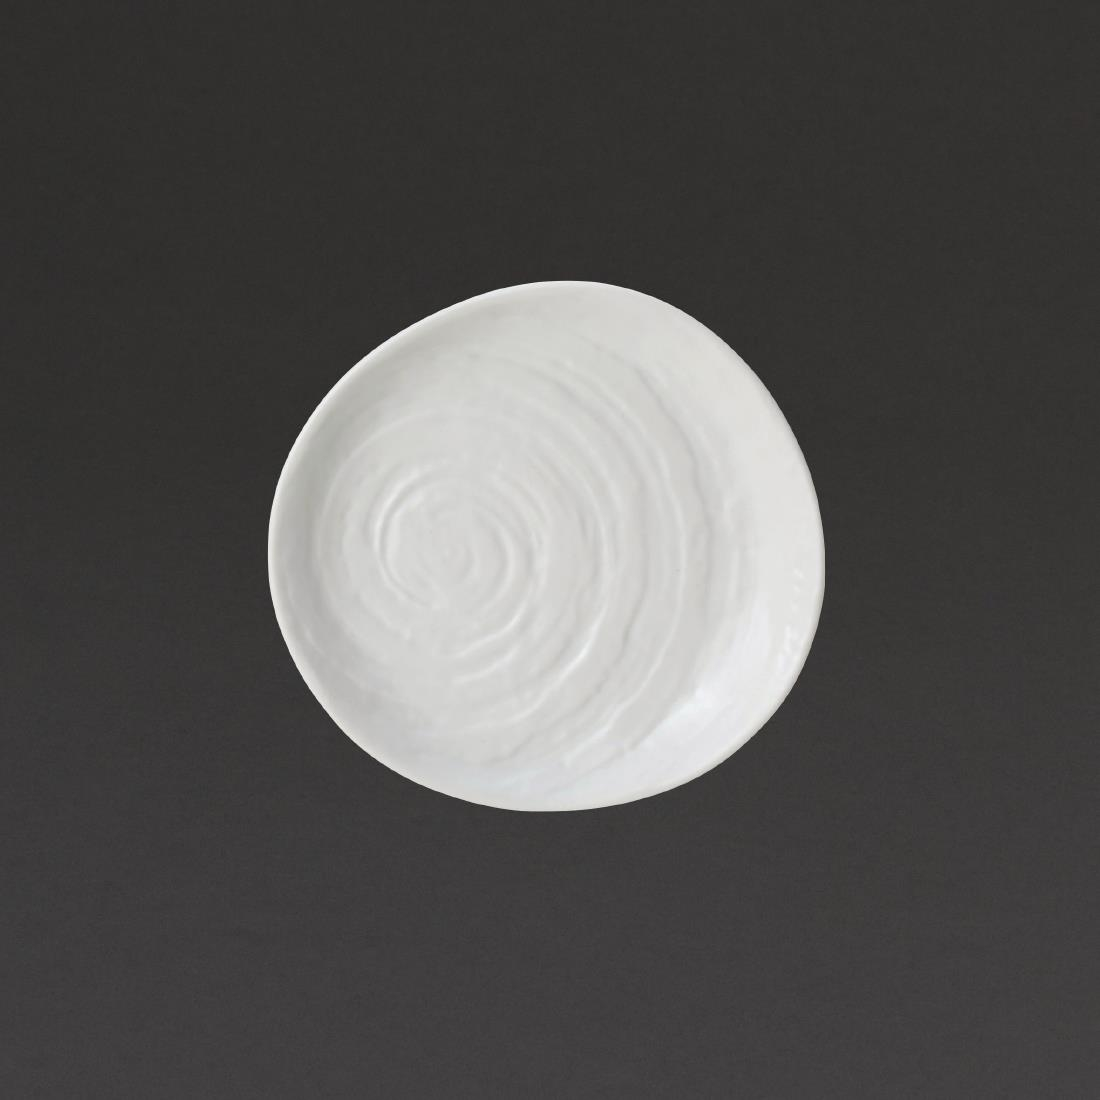 ... steelite-scape-white-melamine-plates-165mm & Steelite Scape White Melamine Plates 165mm - VV724 - Buy Online at ...